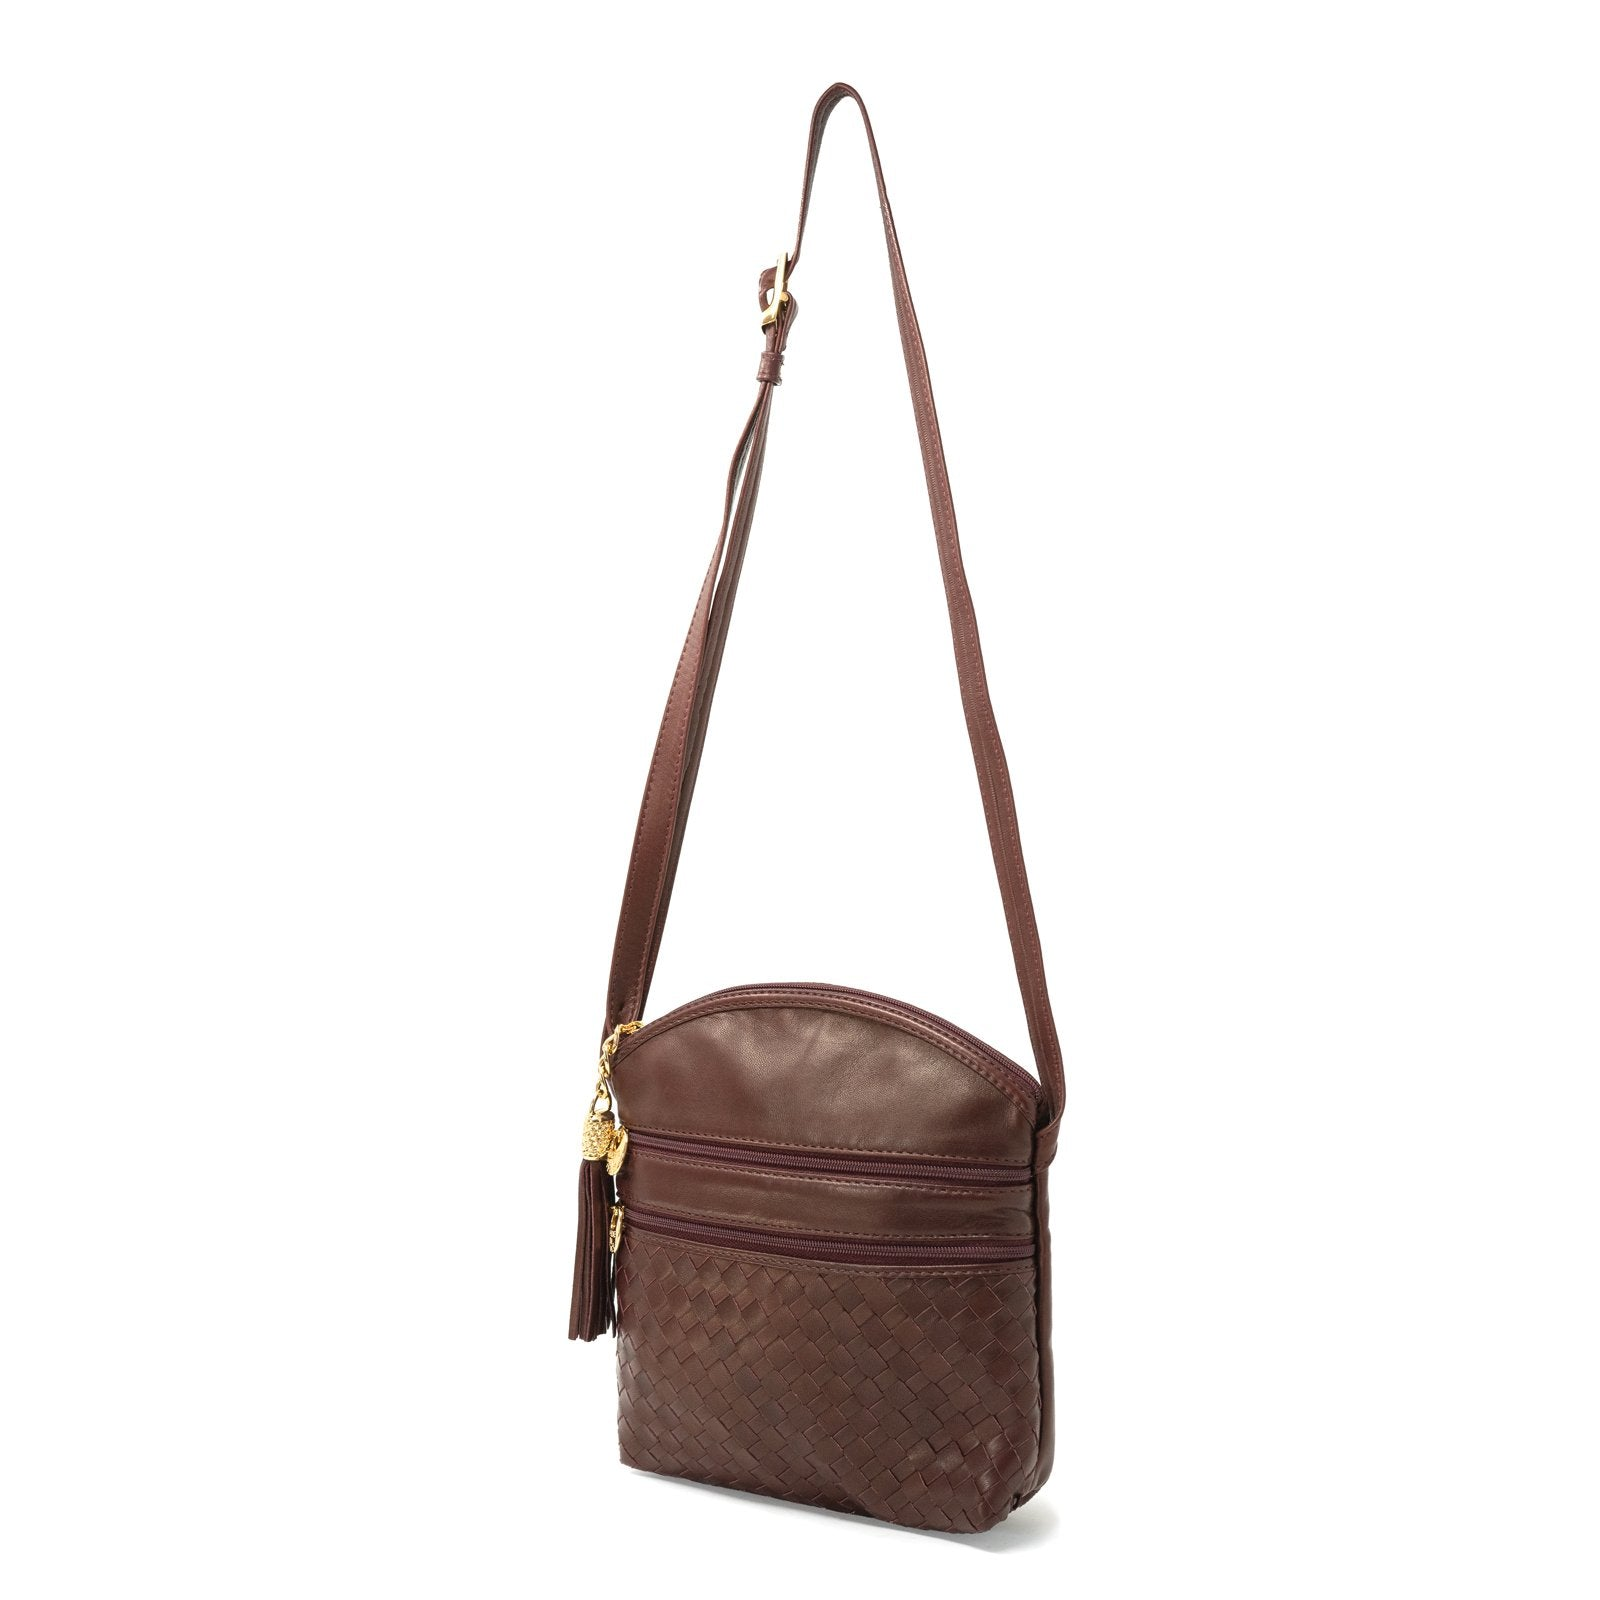 Women Intrecciato Leather Soft Messenger LUC963 Burgundy Quadro - Jennifer Tattanelli